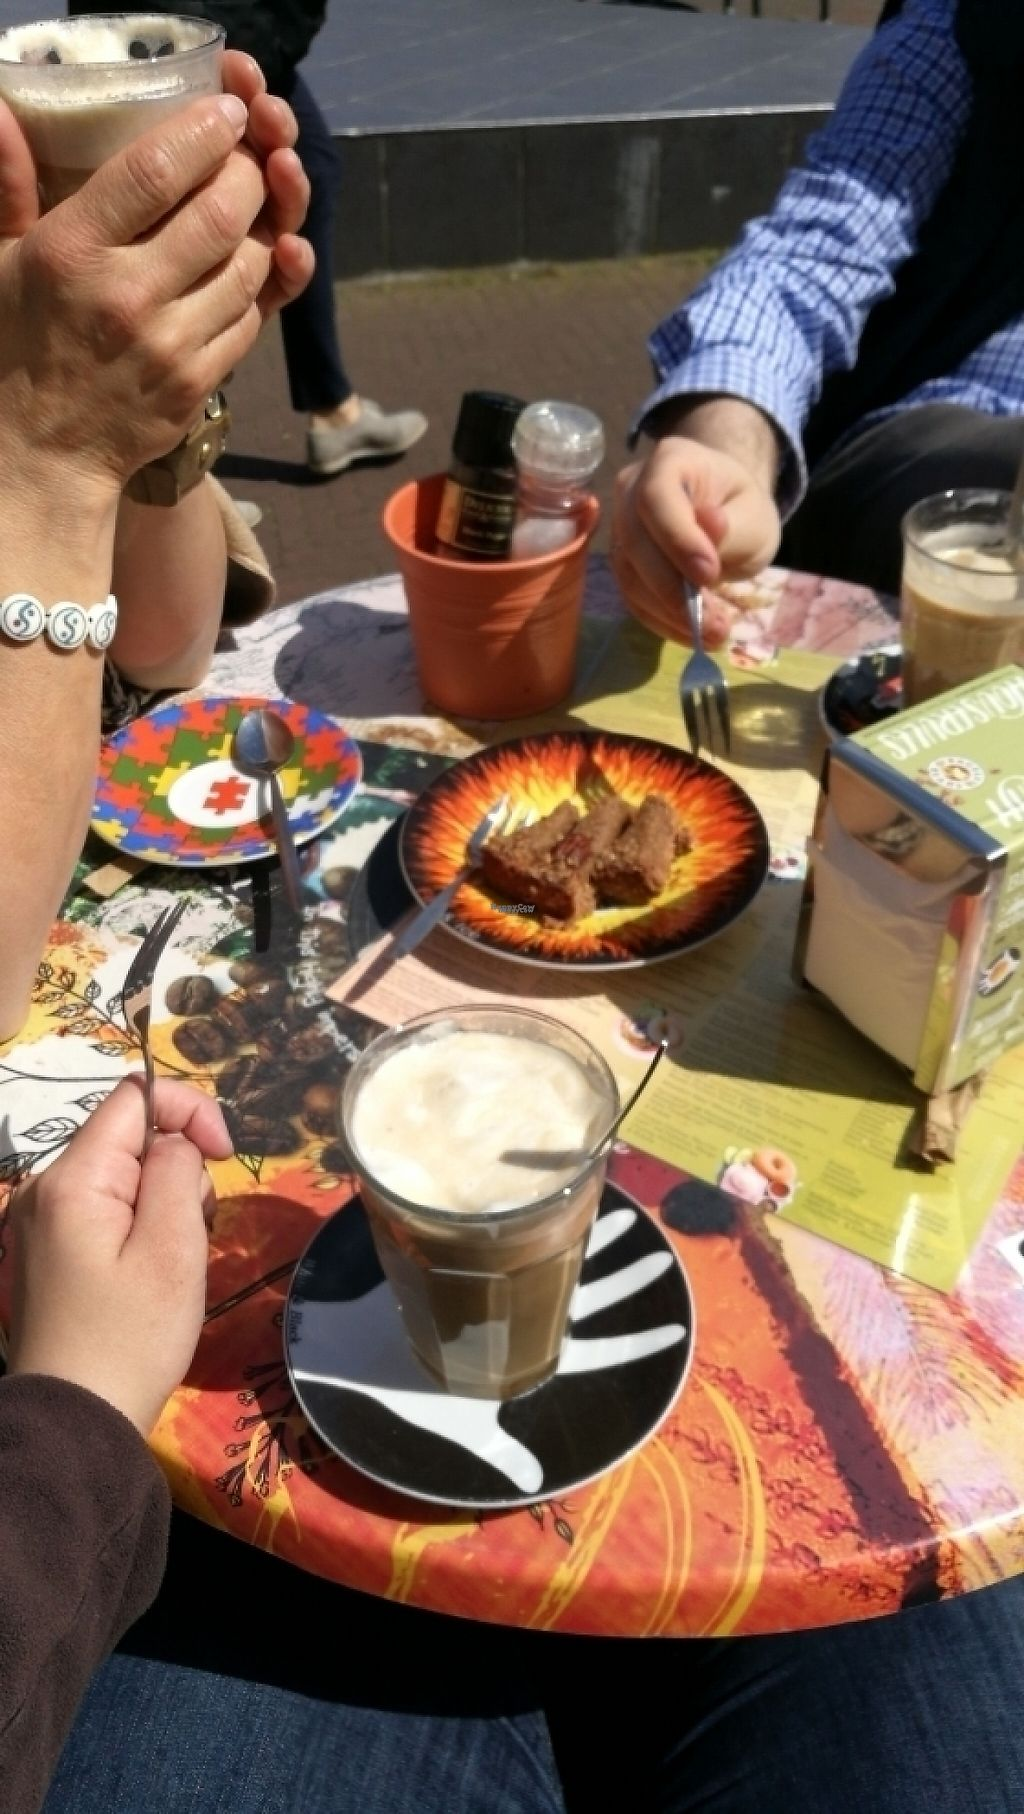 """Photo of Bagels & Beans - Piet Heinplein  by <a href=""""/members/profile/kaunispeto"""">kaunispeto</a> <br/>soy latte  <br/> April 30, 2017  - <a href='/contact/abuse/image/50267/254152'>Report</a>"""